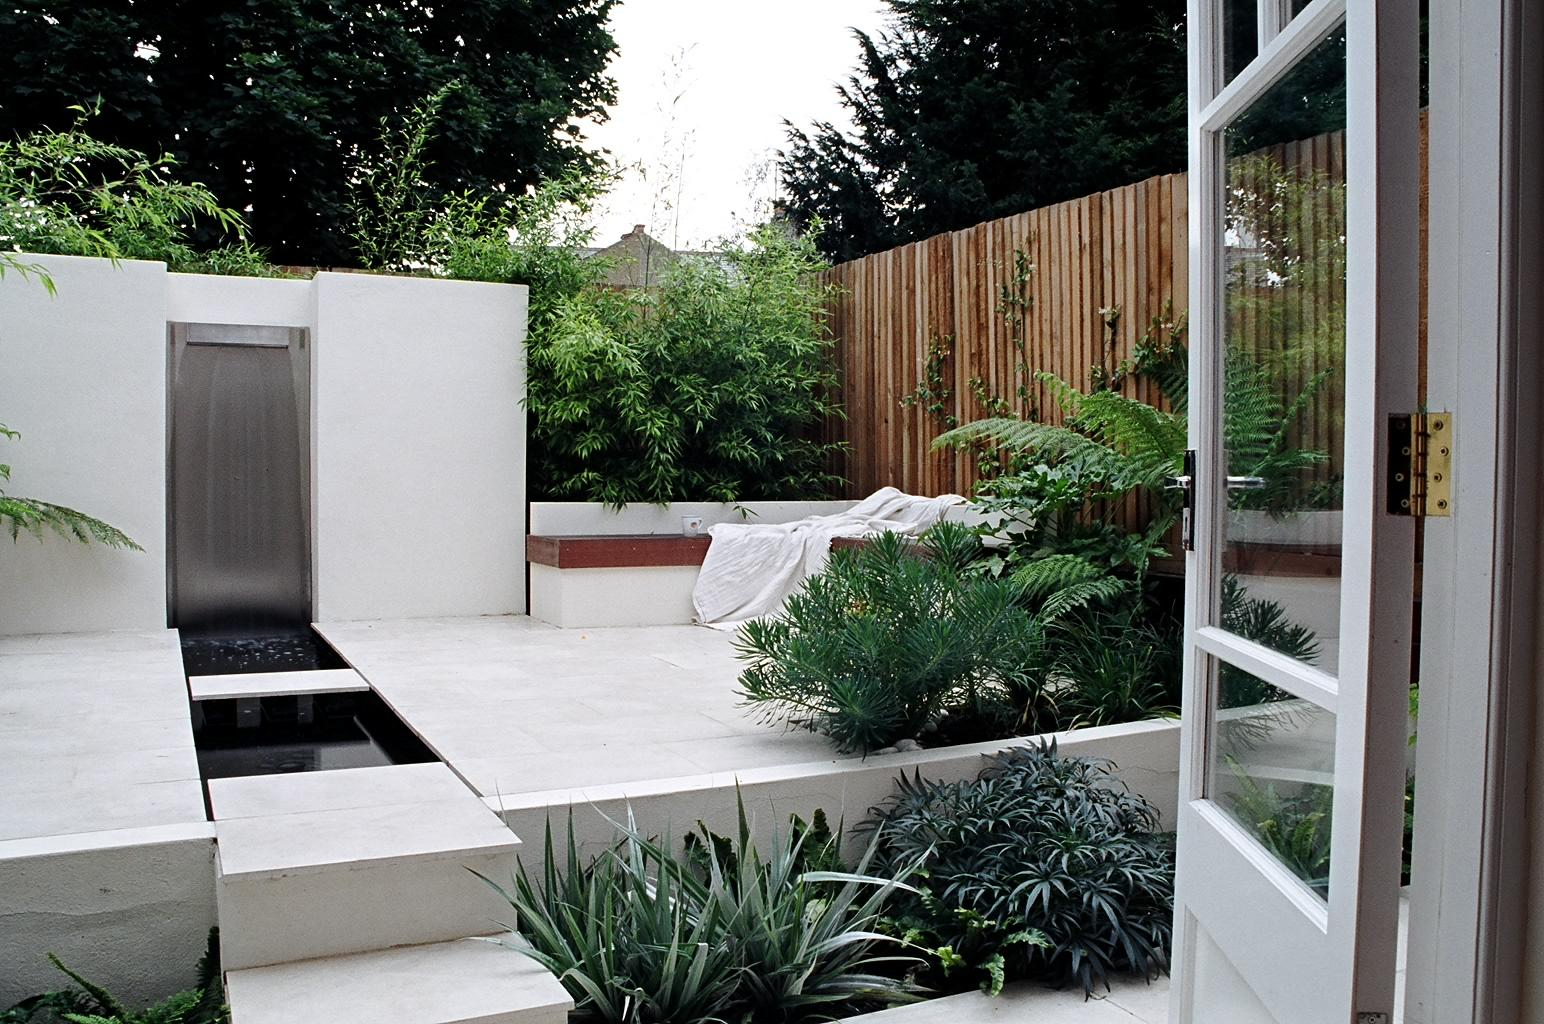 Small urban garden design garden design st albans for Small modern garden design ideas